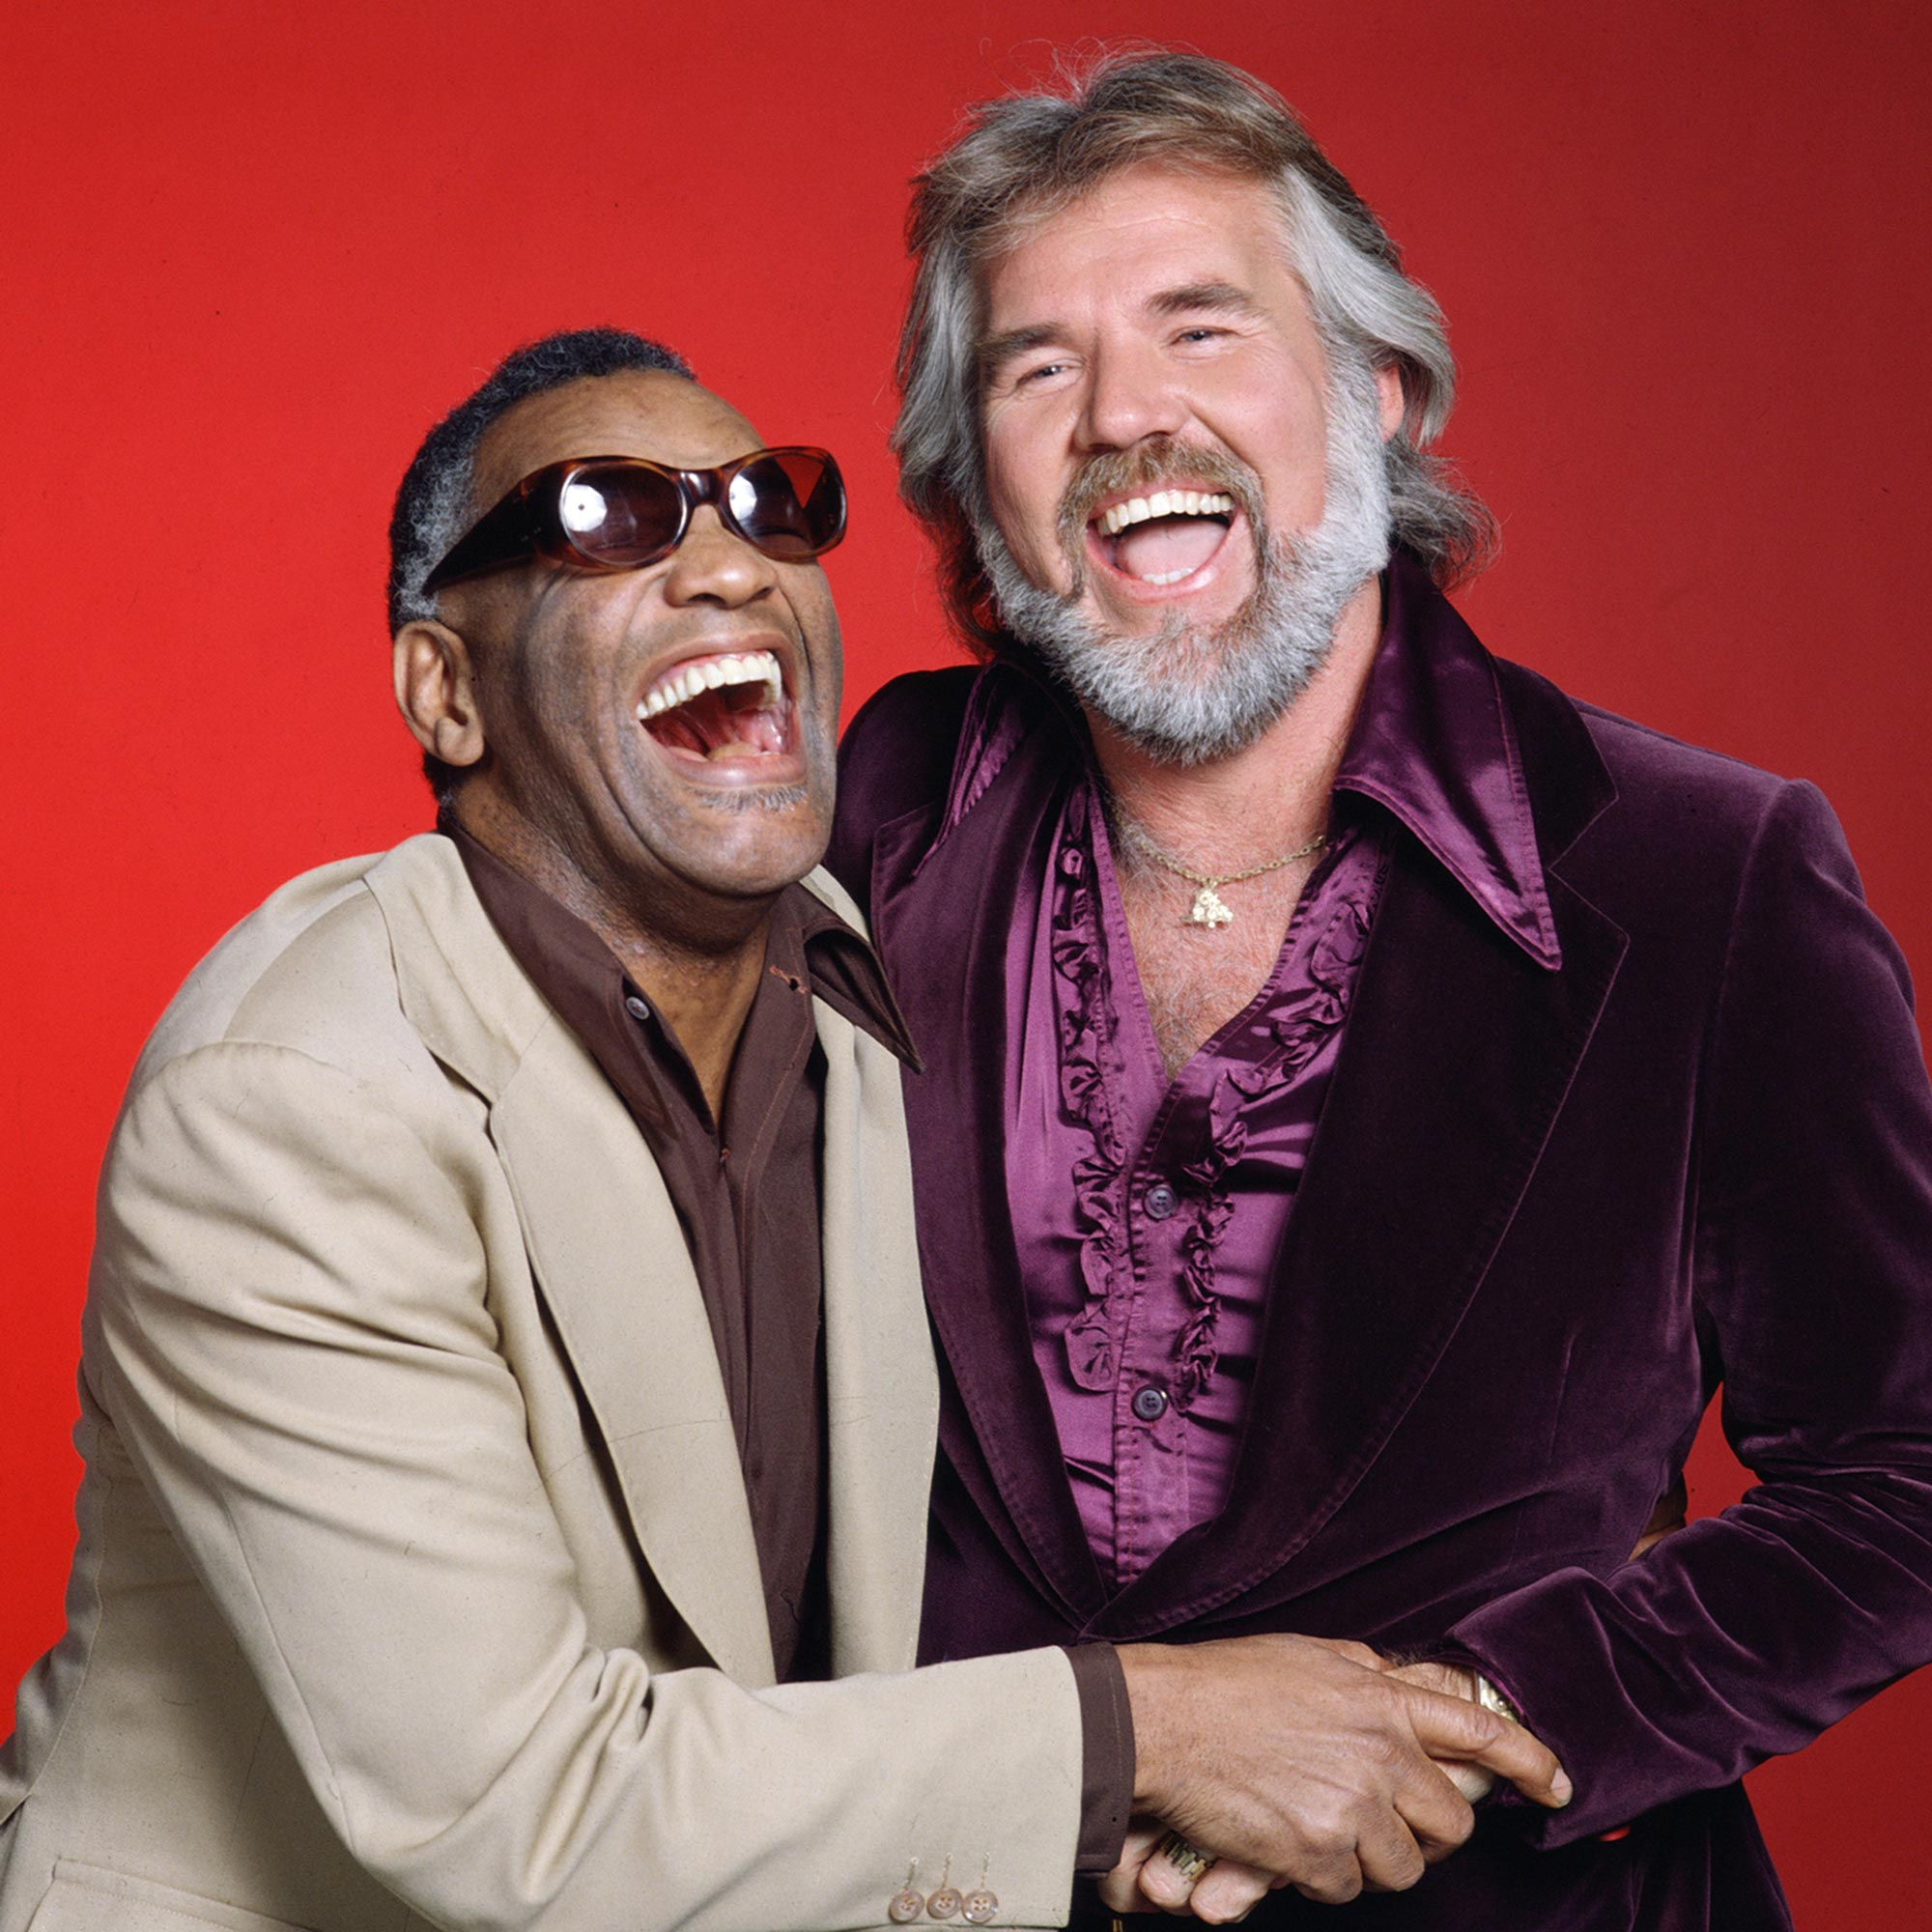 Ray Charles And Kenny Rogers Have A Laugh